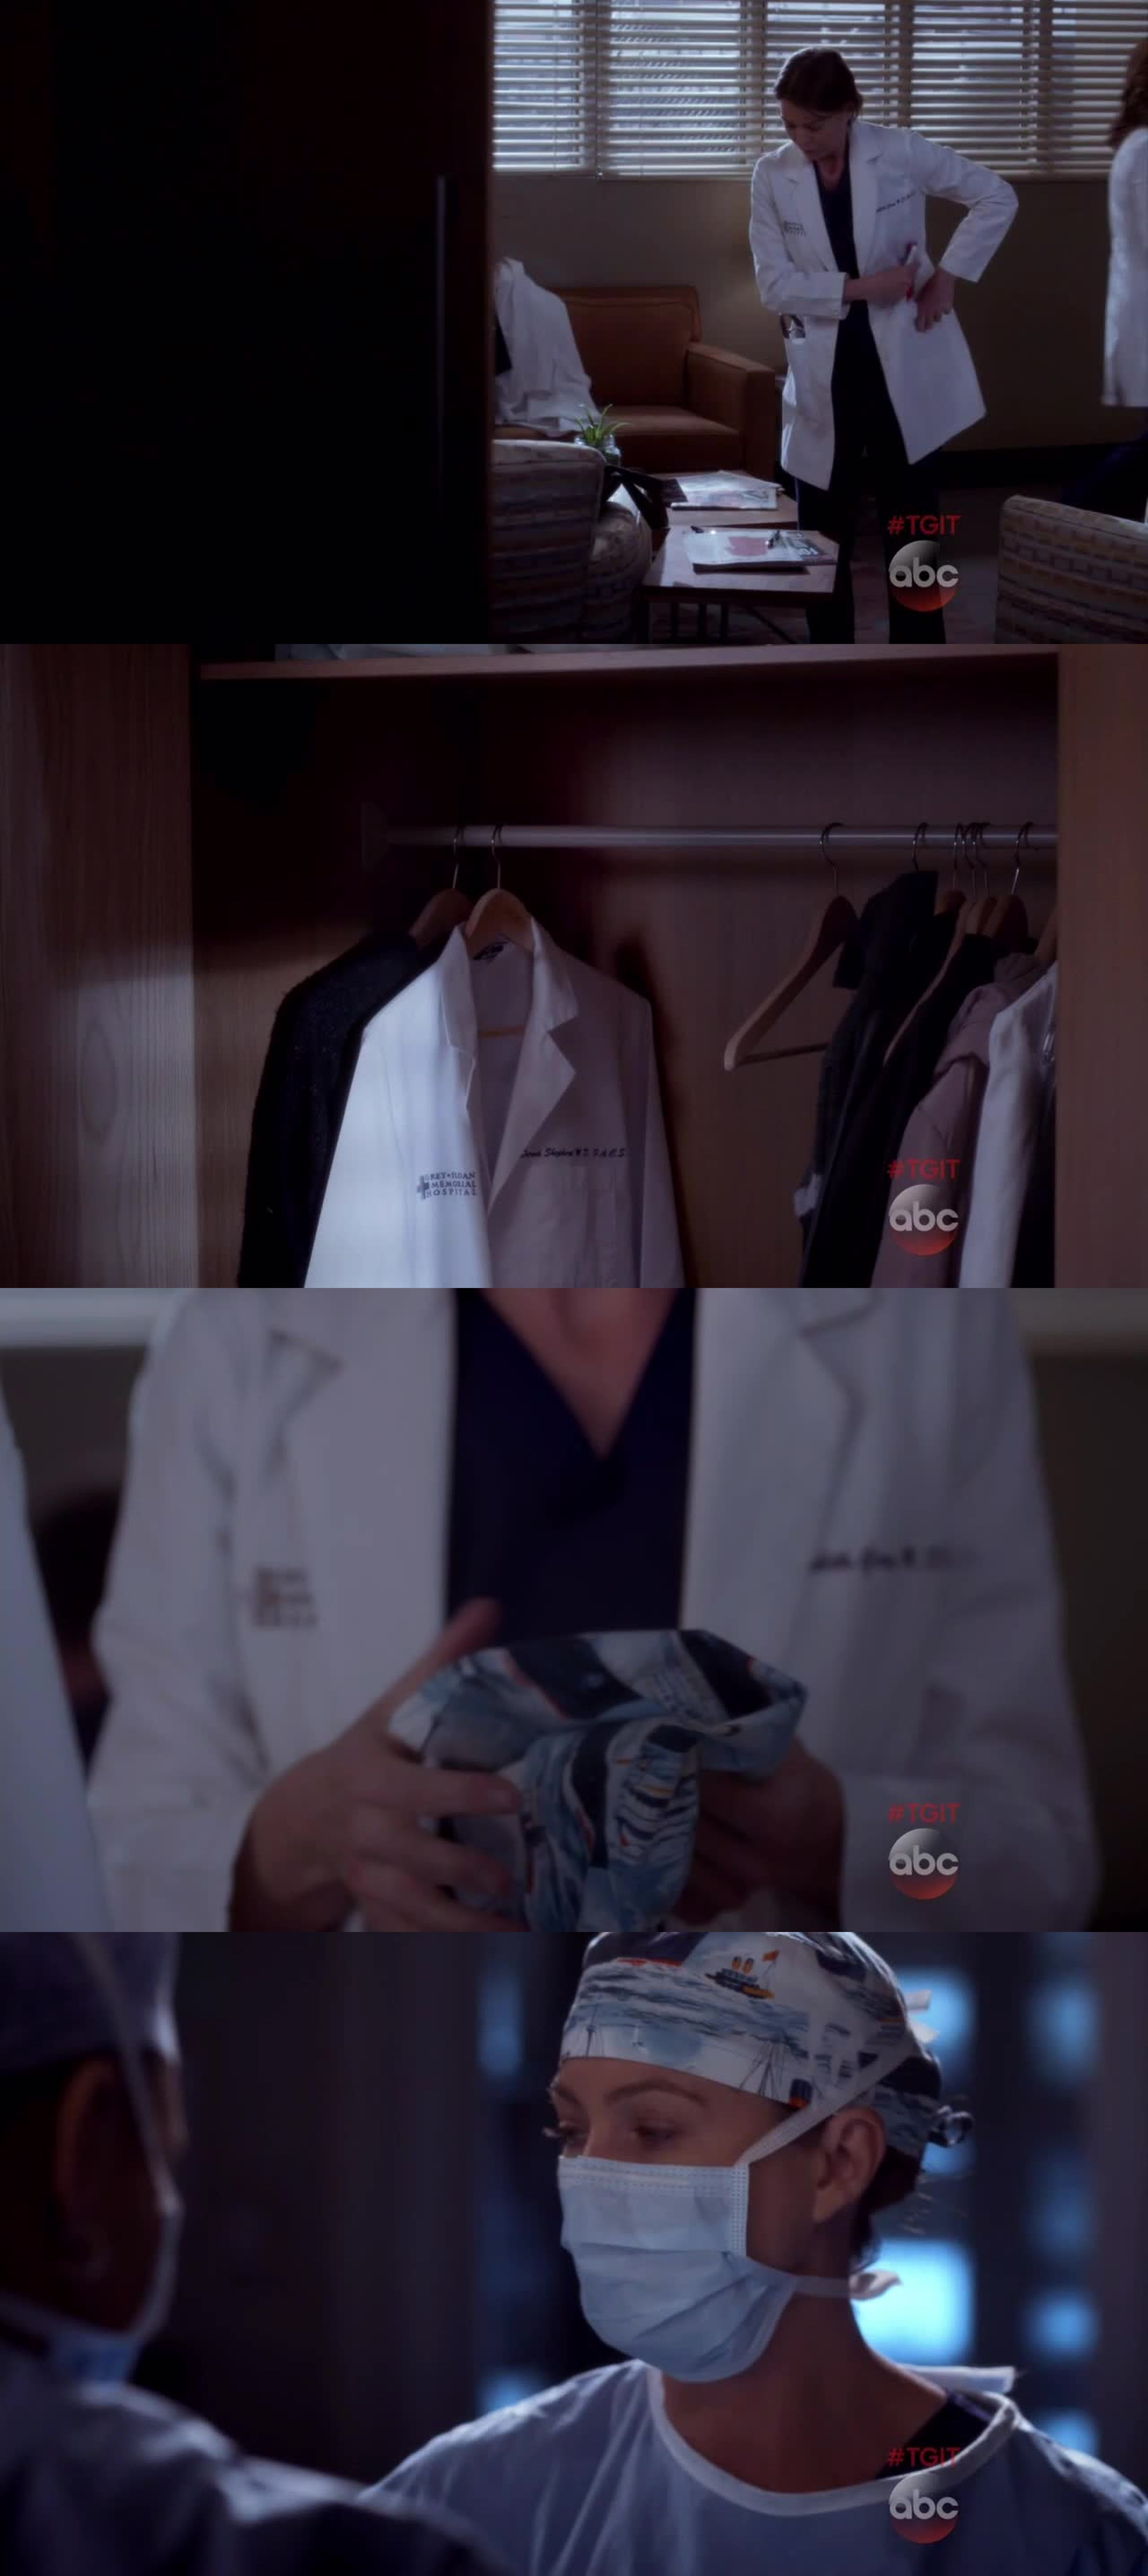 I feel disappointed by this episode. I thought it was gonna lead up to the funeral. and focus on that. And instead it was like 5 seconds of that. Meredith gone for half the episode. Not to mention how it was obvious shed be pregnant. I just figured last week, that that SL would come. but maybe only over more than 1 episode. I'm still thinking I wont be watching season 12. Too ruined by now. It does make me sad to see where this show has gone to. :(